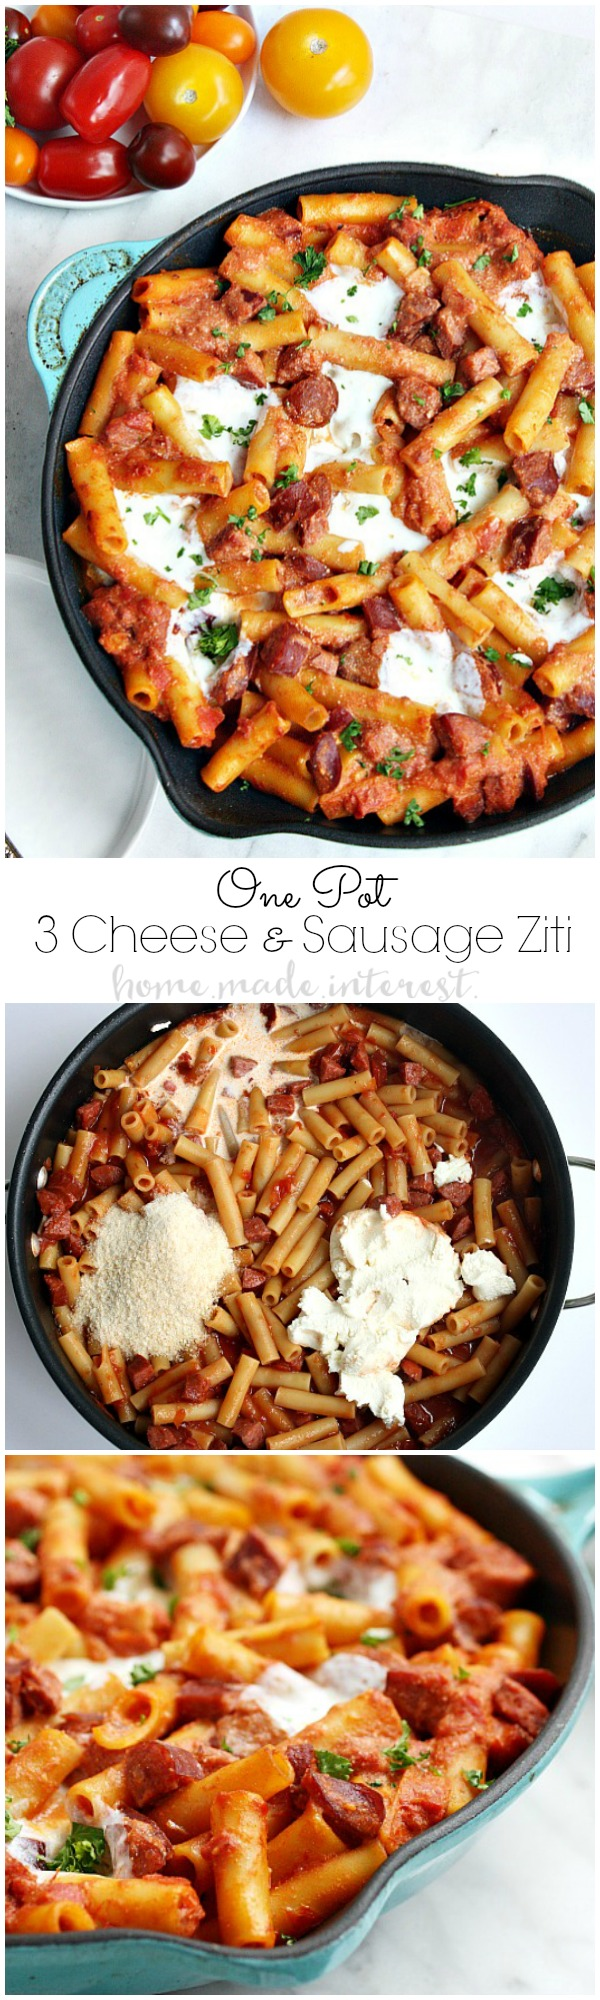 Parmesan, Mozzarella, Riccotta cheese, and sausage in a creamy tomato sauce cooked with ziti noodles. This one pot recipe makes an easy weeknight meal for the whole family. Everyone loves baked ziti and this simple one pot baked ziti recipe doesn't disappoint!